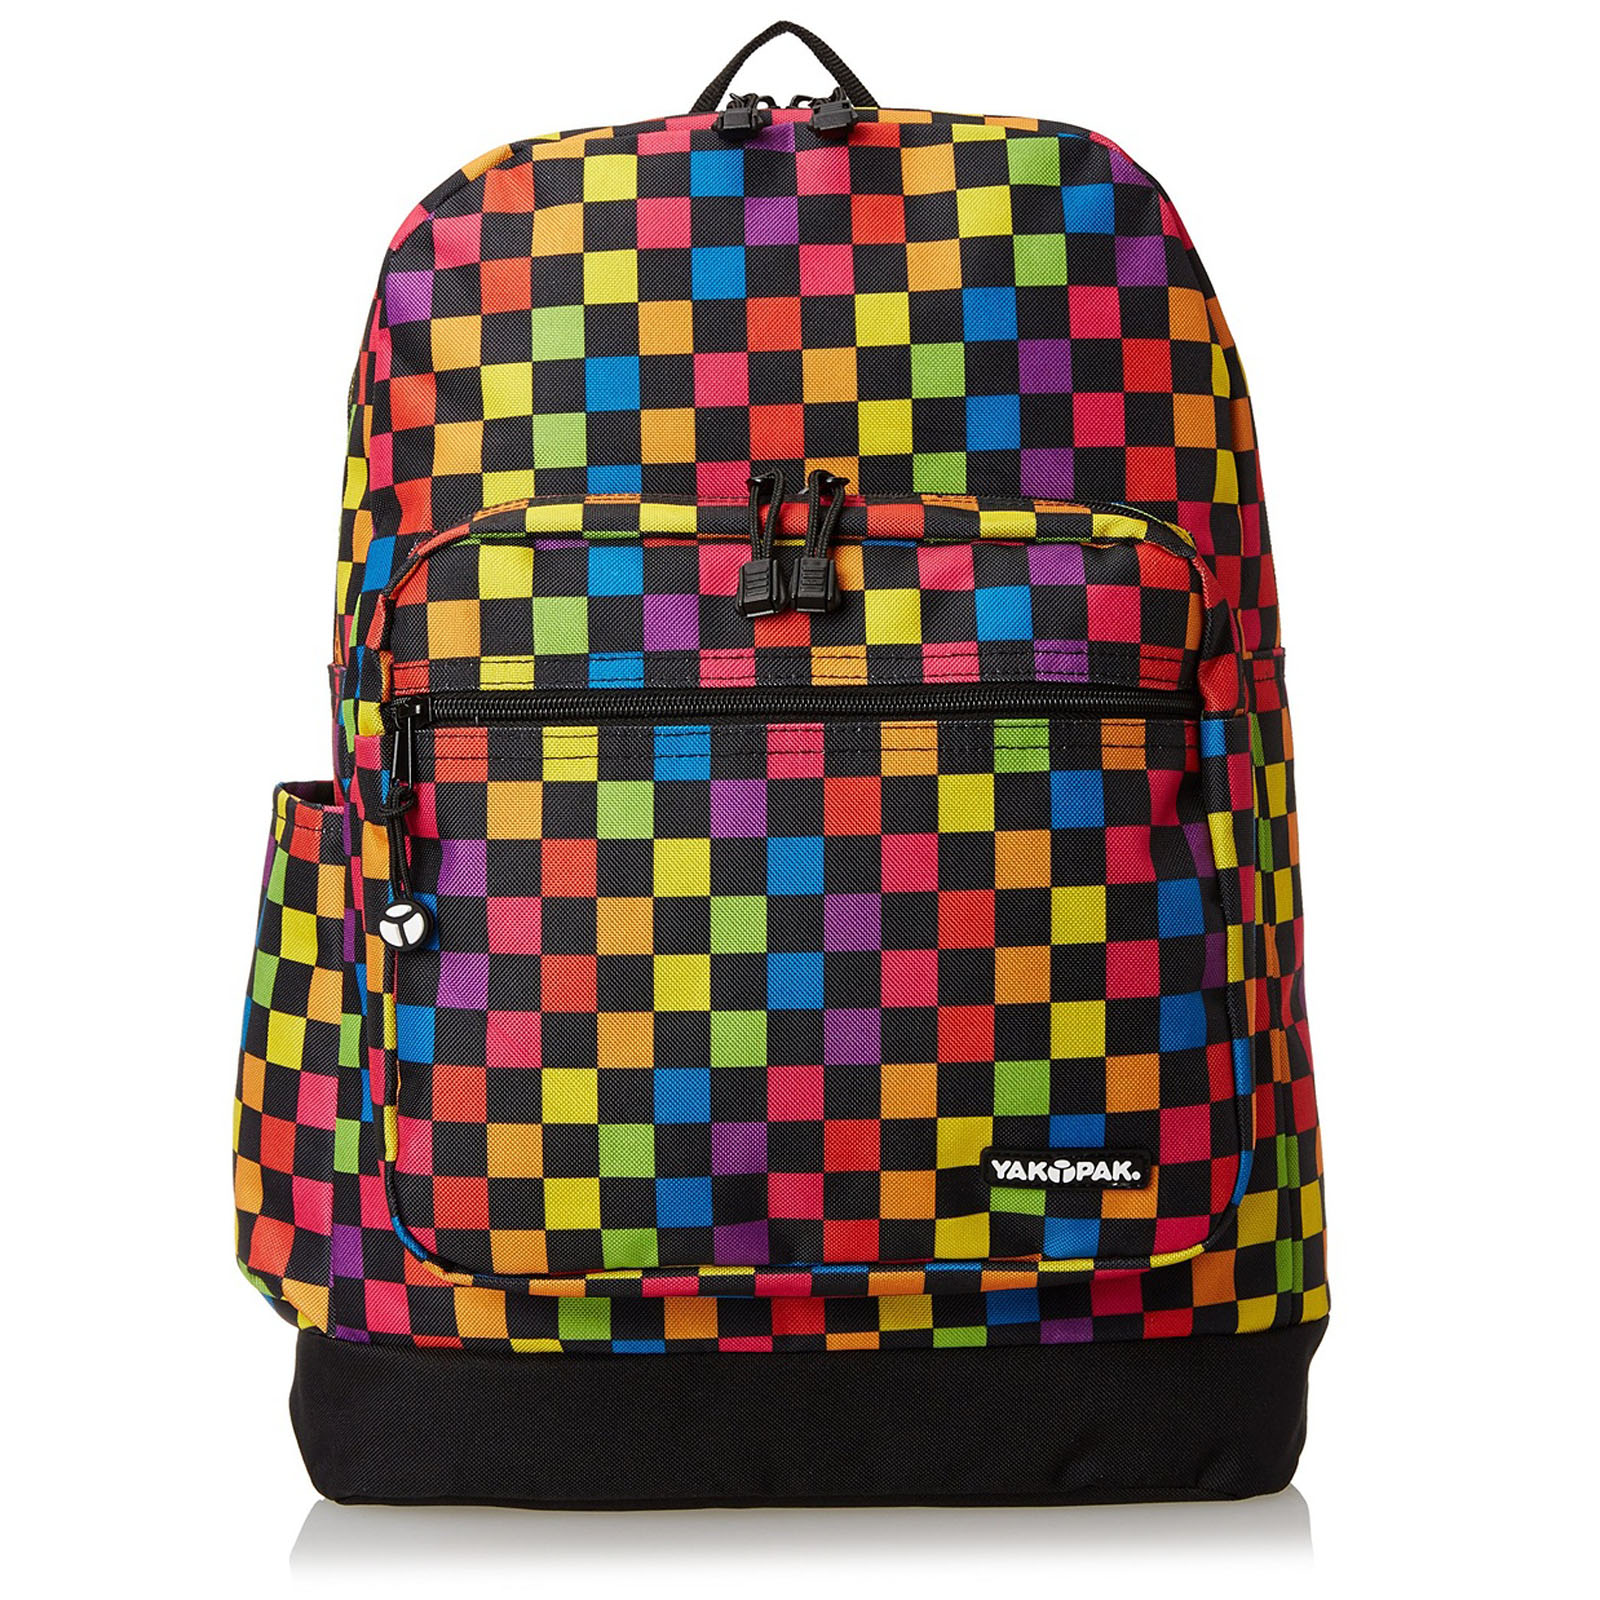 Details about Yak Pak Deluxe Backpack - Student School Laptop Bag